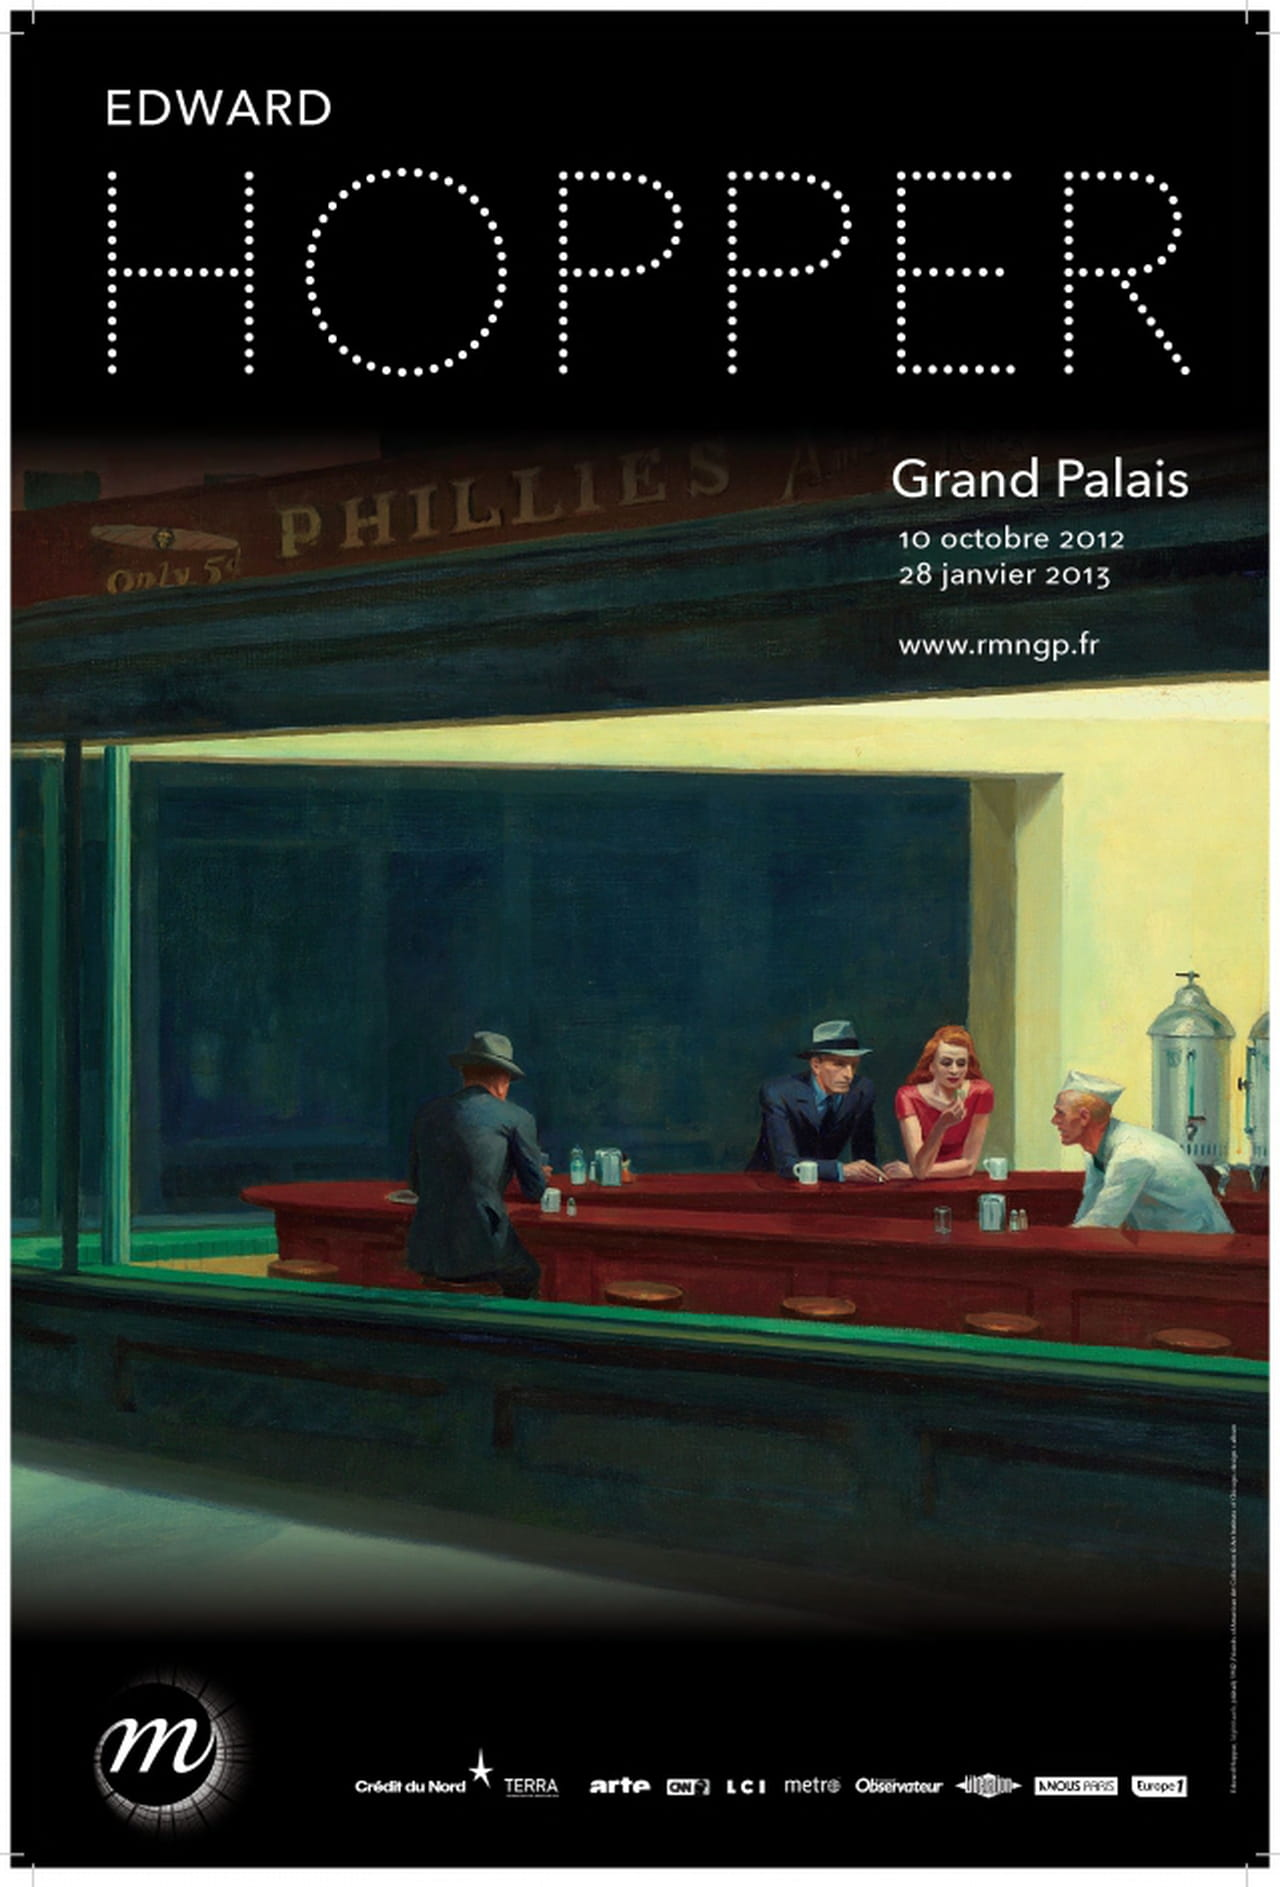 Edward hopper au grand palais l 39 exposition qui fera date - Grand palais expo horaires ...